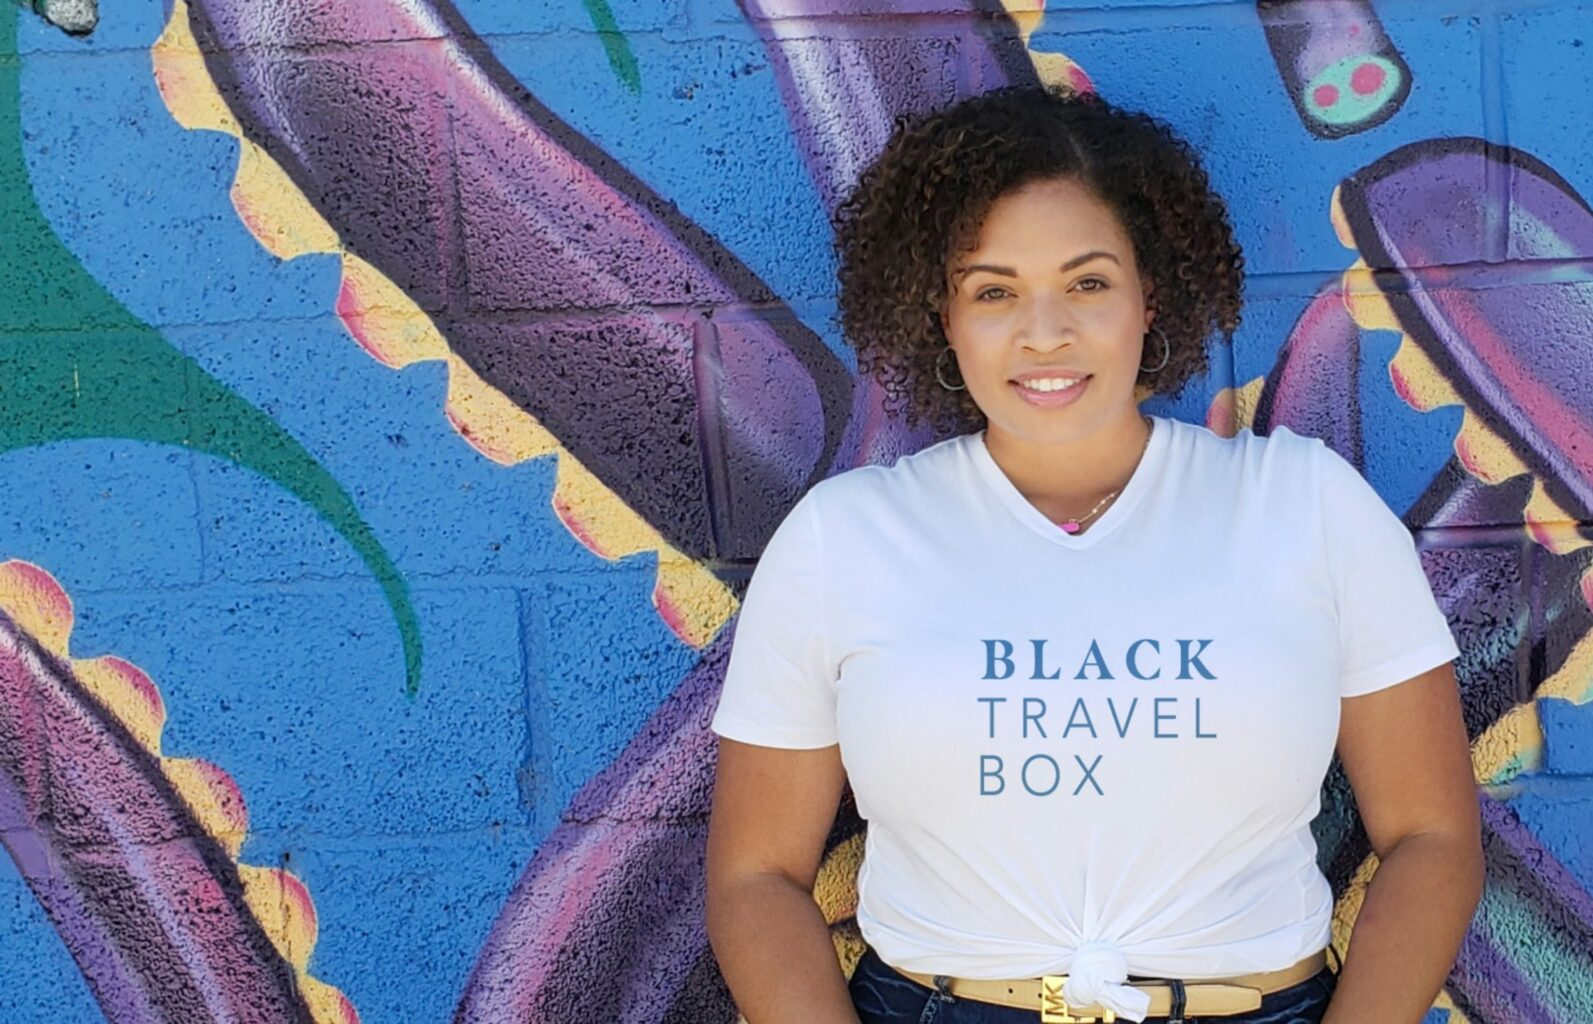 The Black Travel Box: A Beauty Industry Game Changer